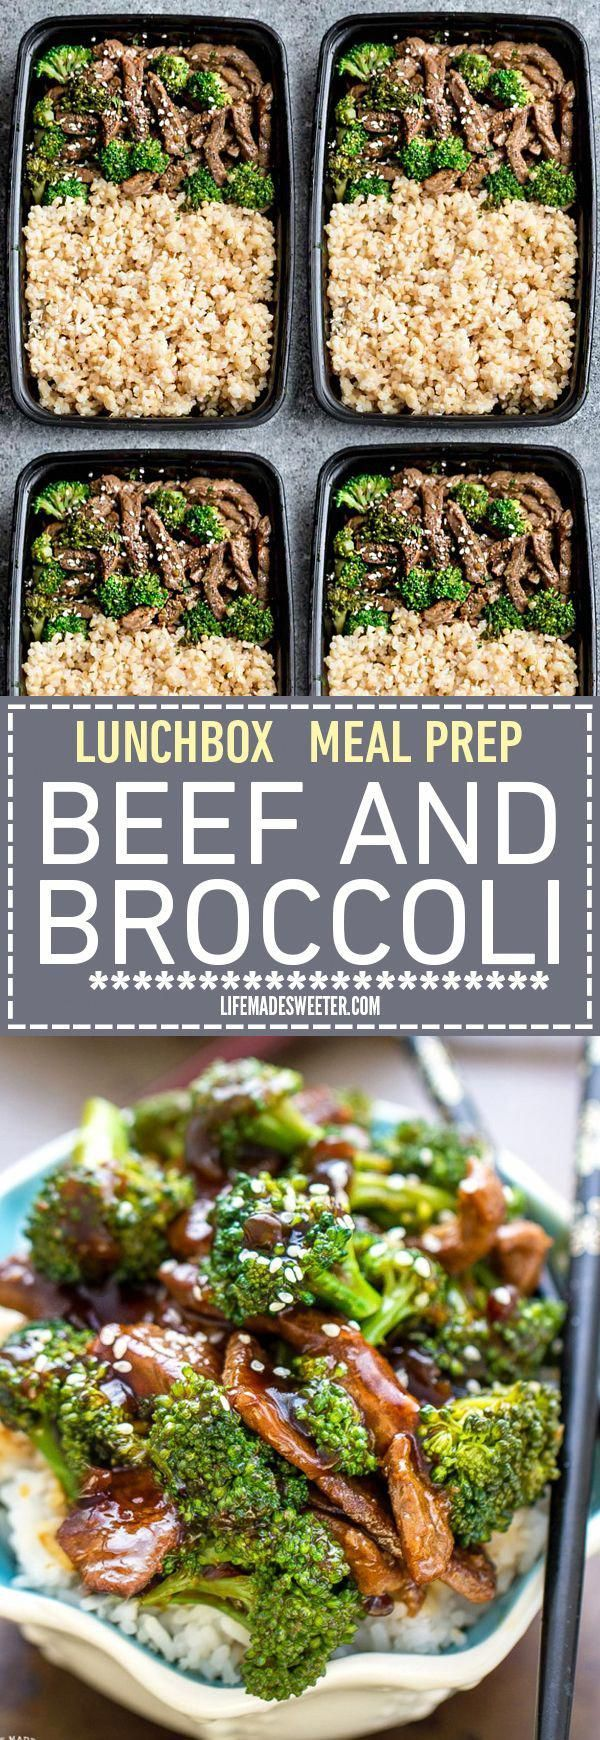 Beef and Broccoli - Life Made Sweeter (Gluten Free & Paleo Option)